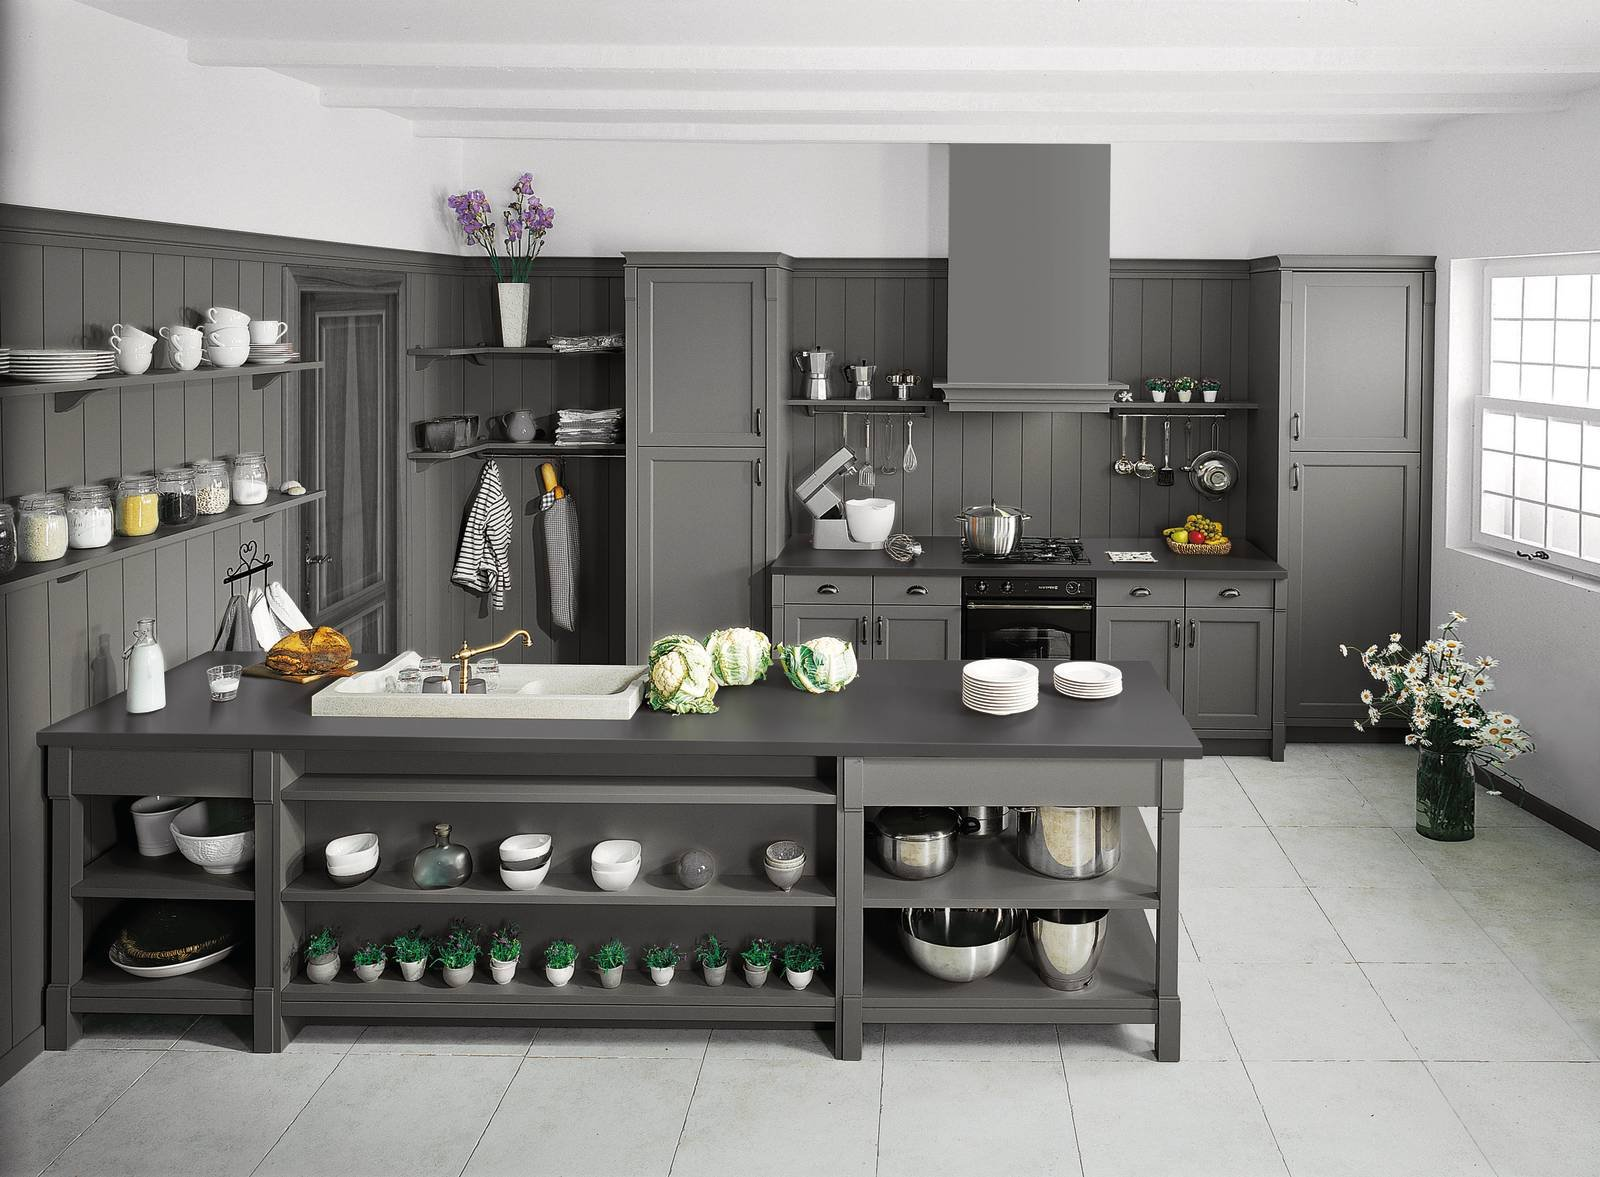 cucina in stile country anche in versione attuale cose di casa. Black Bedroom Furniture Sets. Home Design Ideas